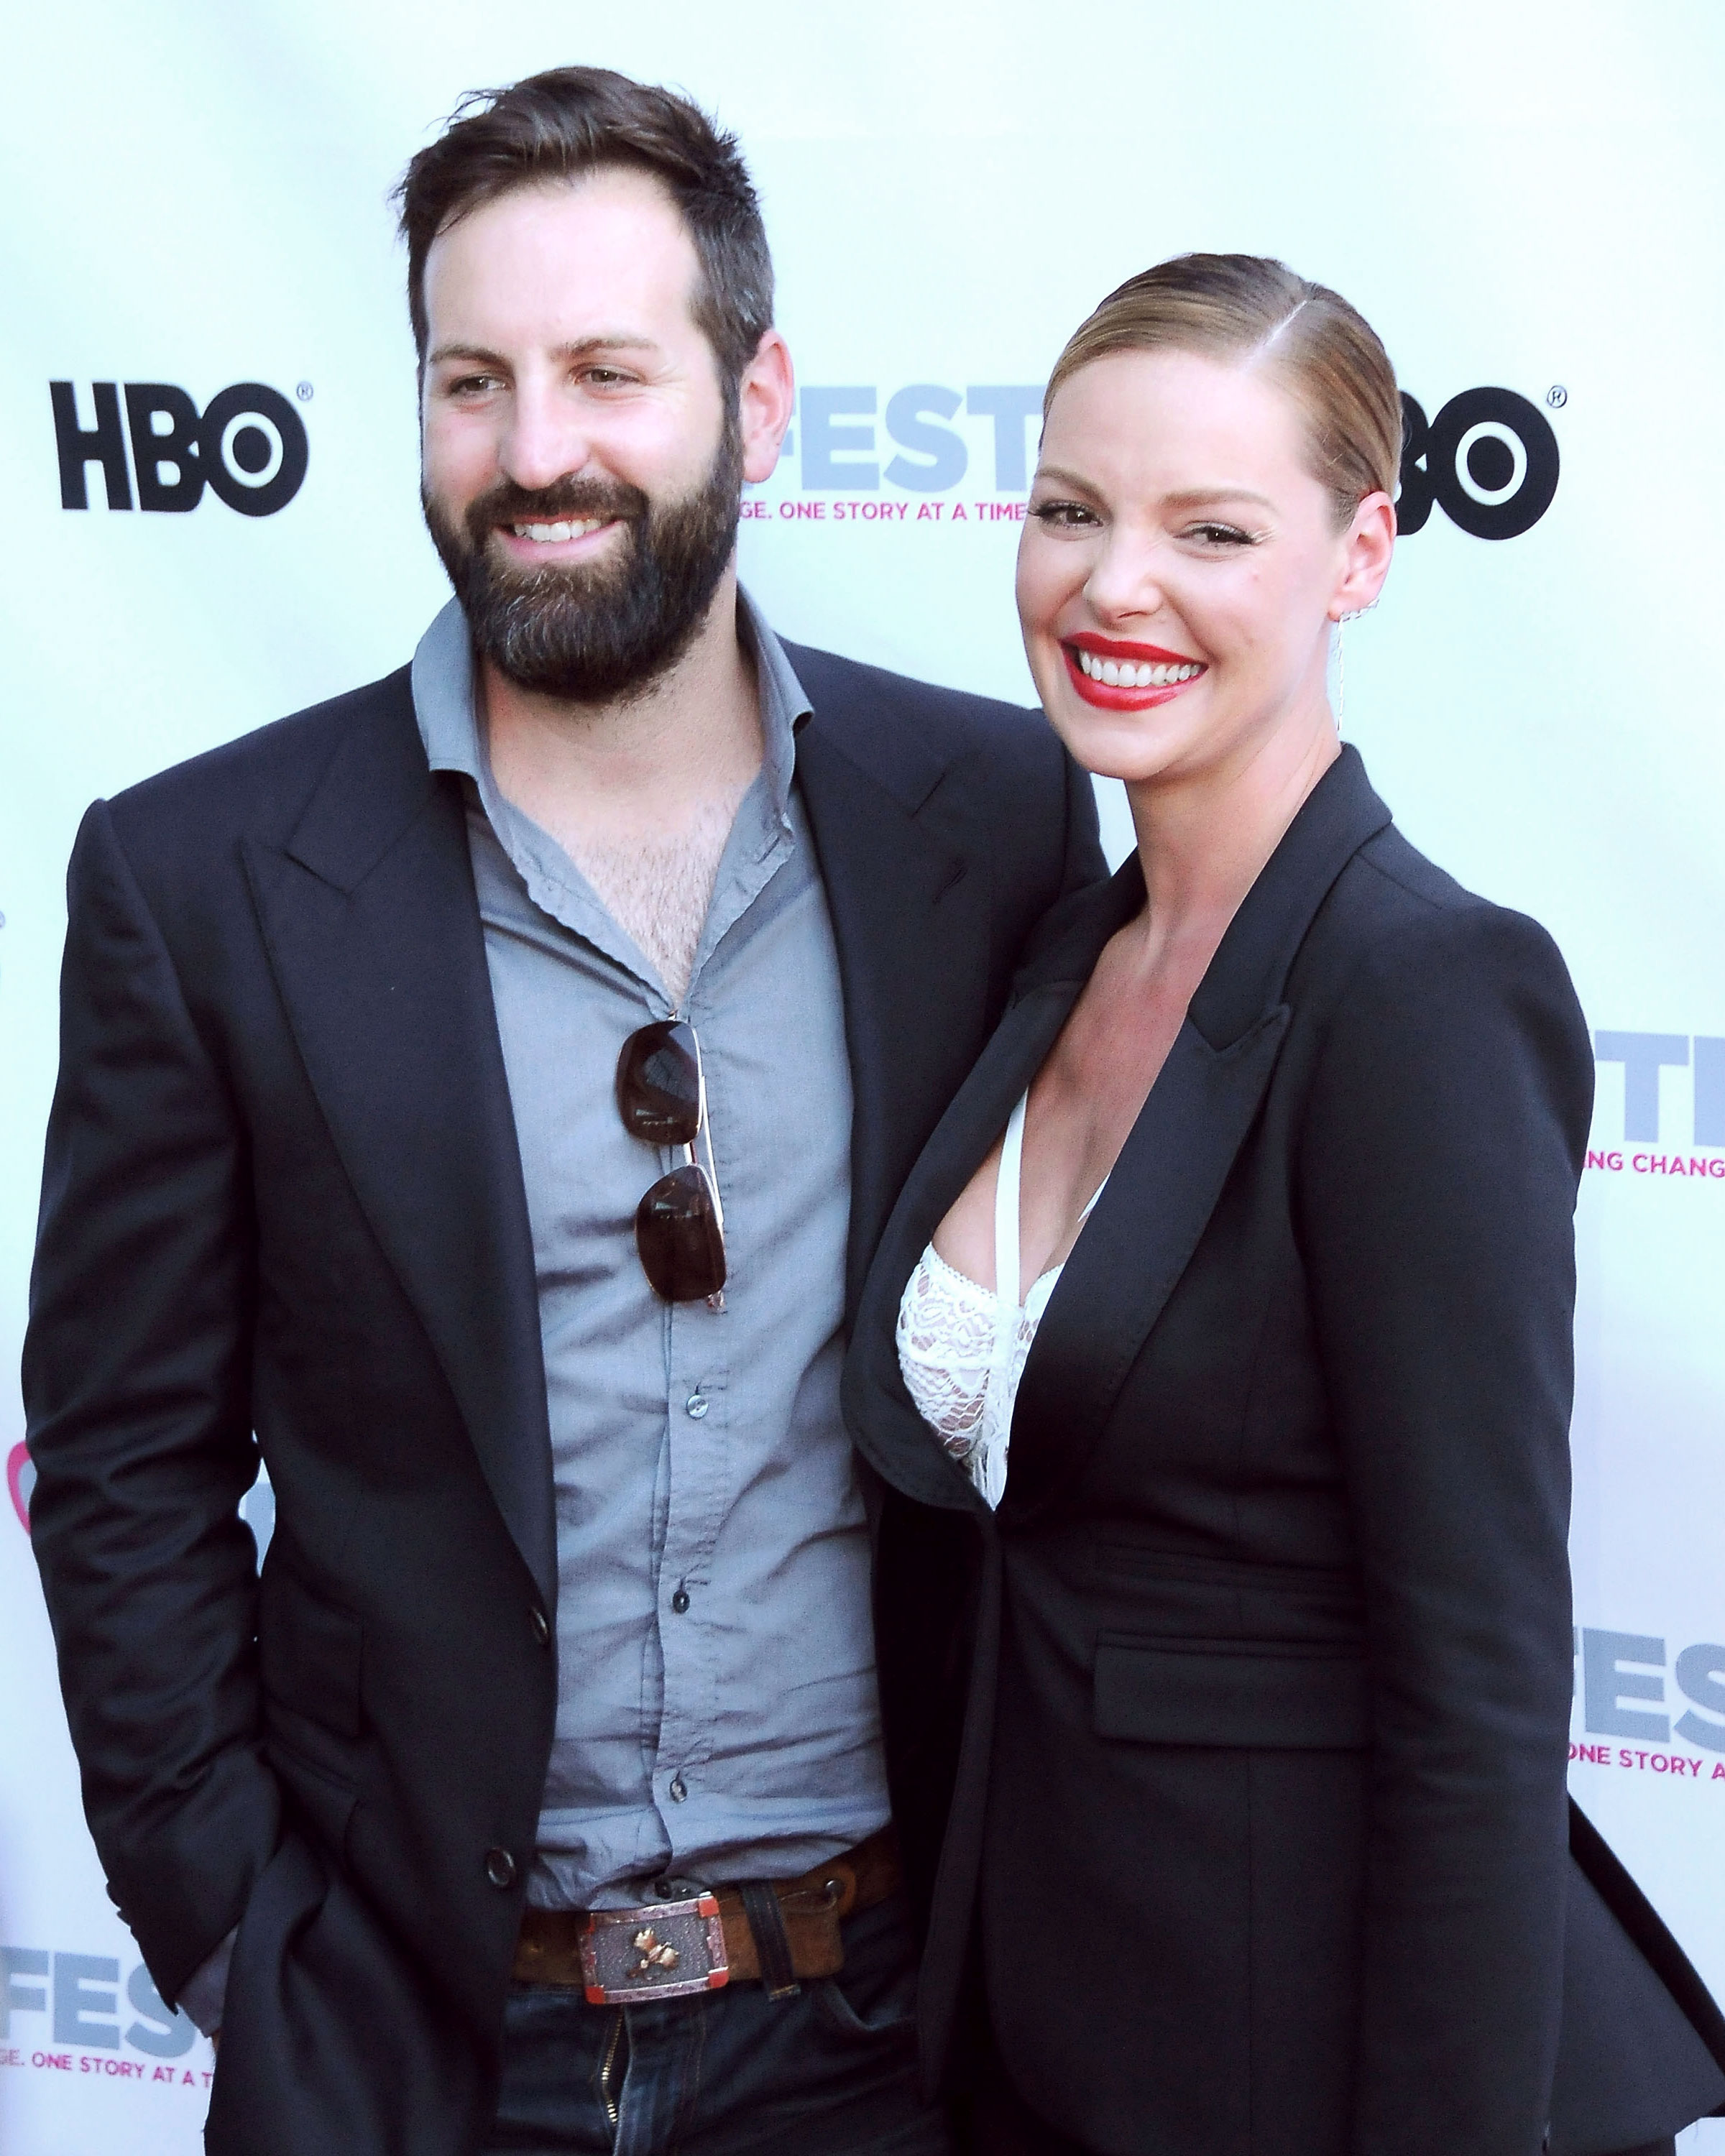 celeb-mishaps-katherine-heigl-josh-kelley-red-carpet-0316.jpg